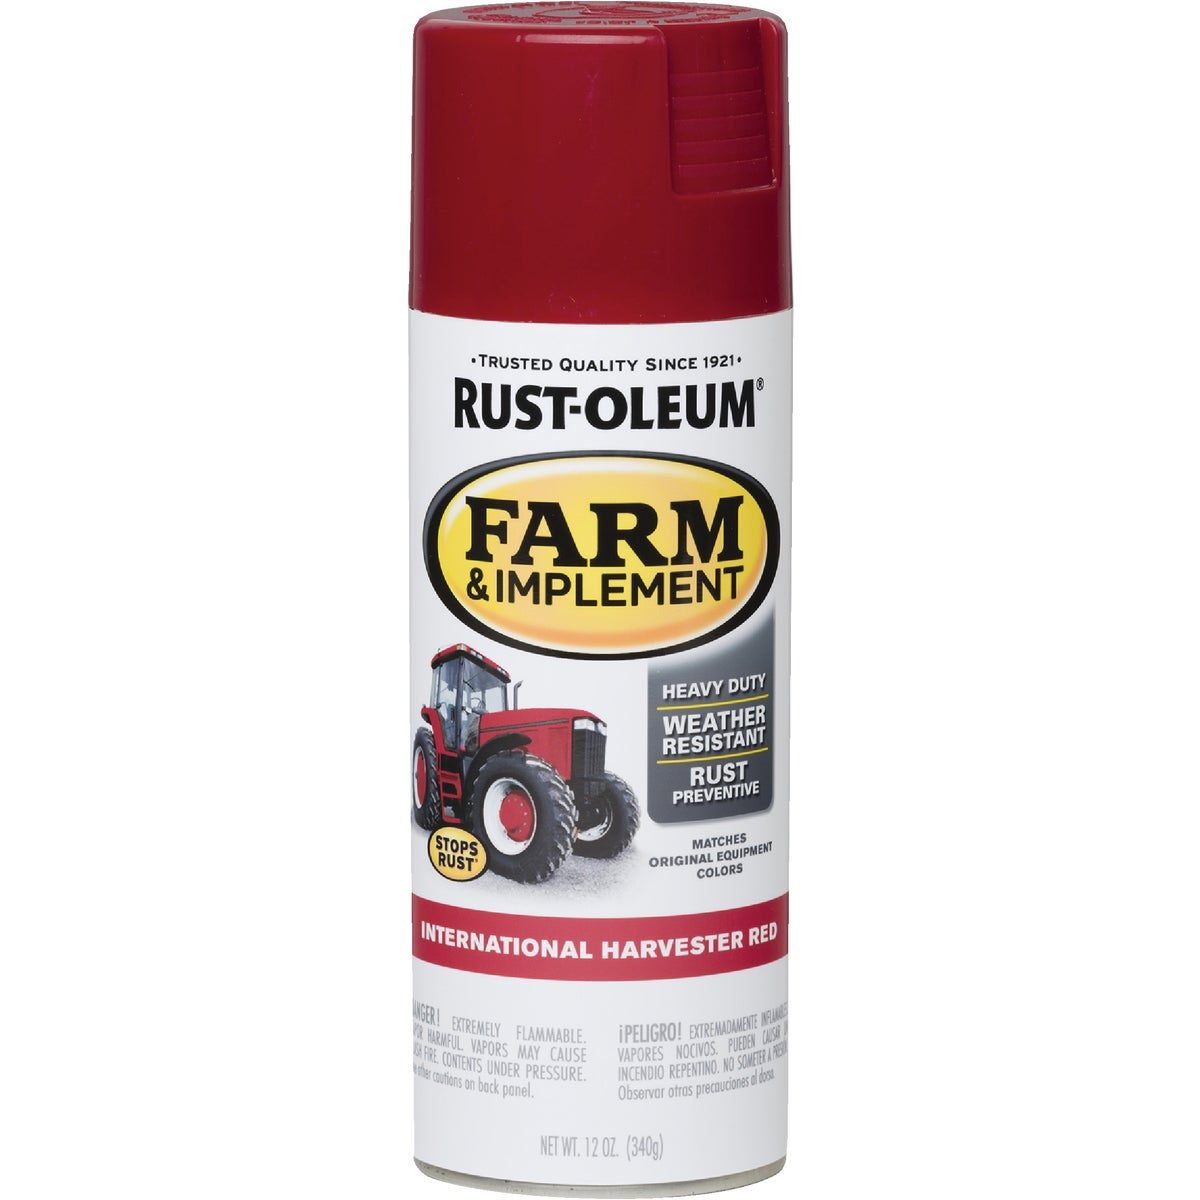 INTL RED SPRAY PAINT - 7466-830 by Rustoleum